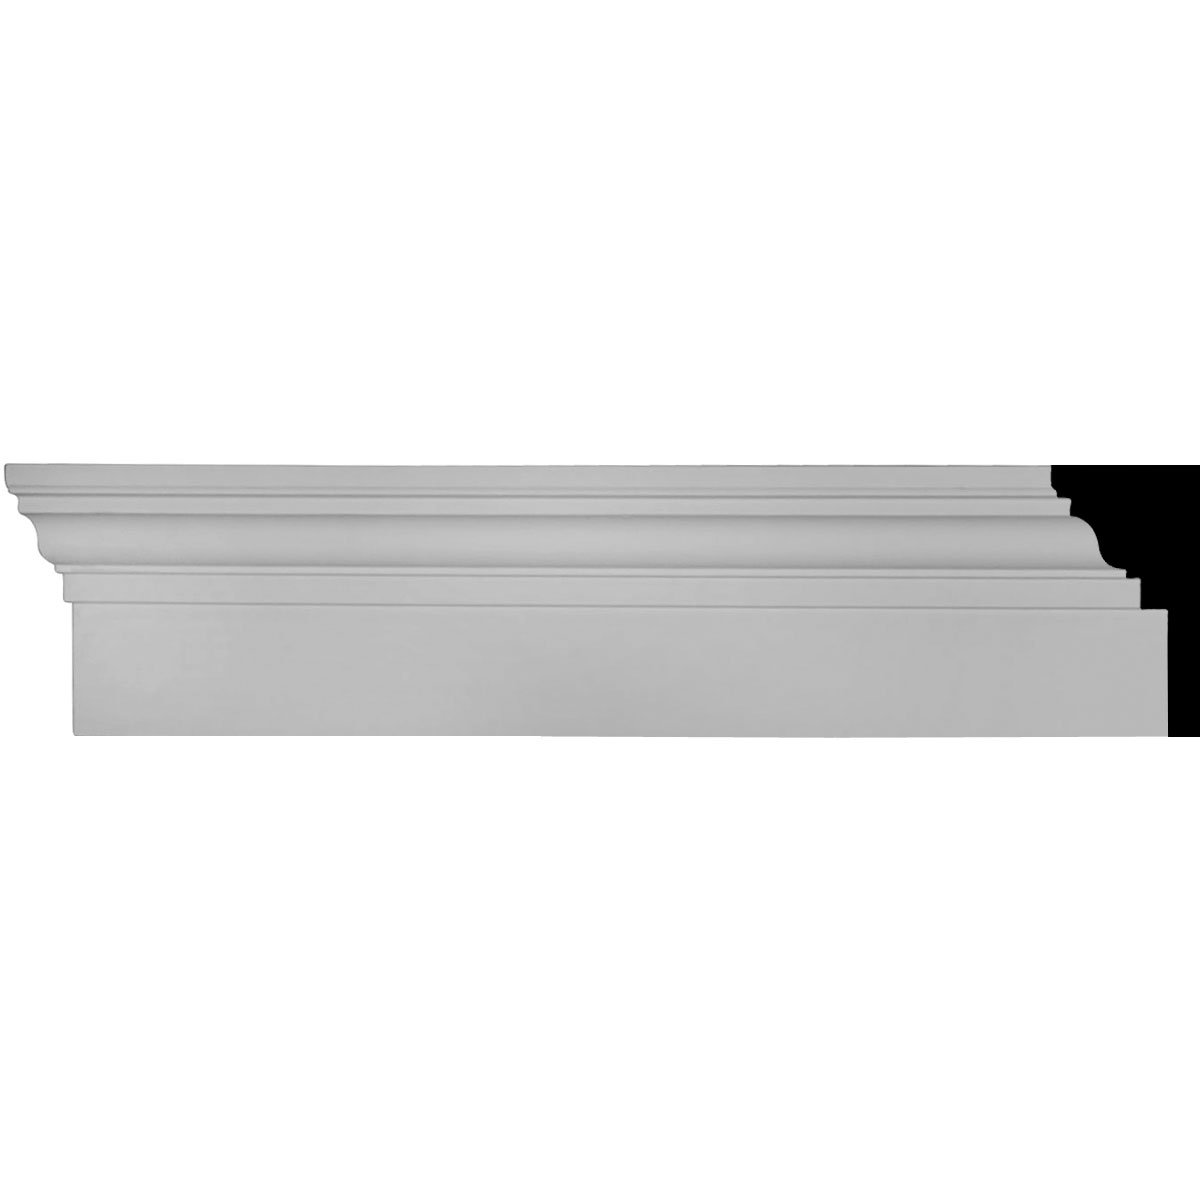 Ekena Millwork CRHM06X96TR 6-Inch x 94 1/2-Inch x 2 3/4-Inch Top Projection x 1-Inch Bottom Projection Traditional Fascia Header